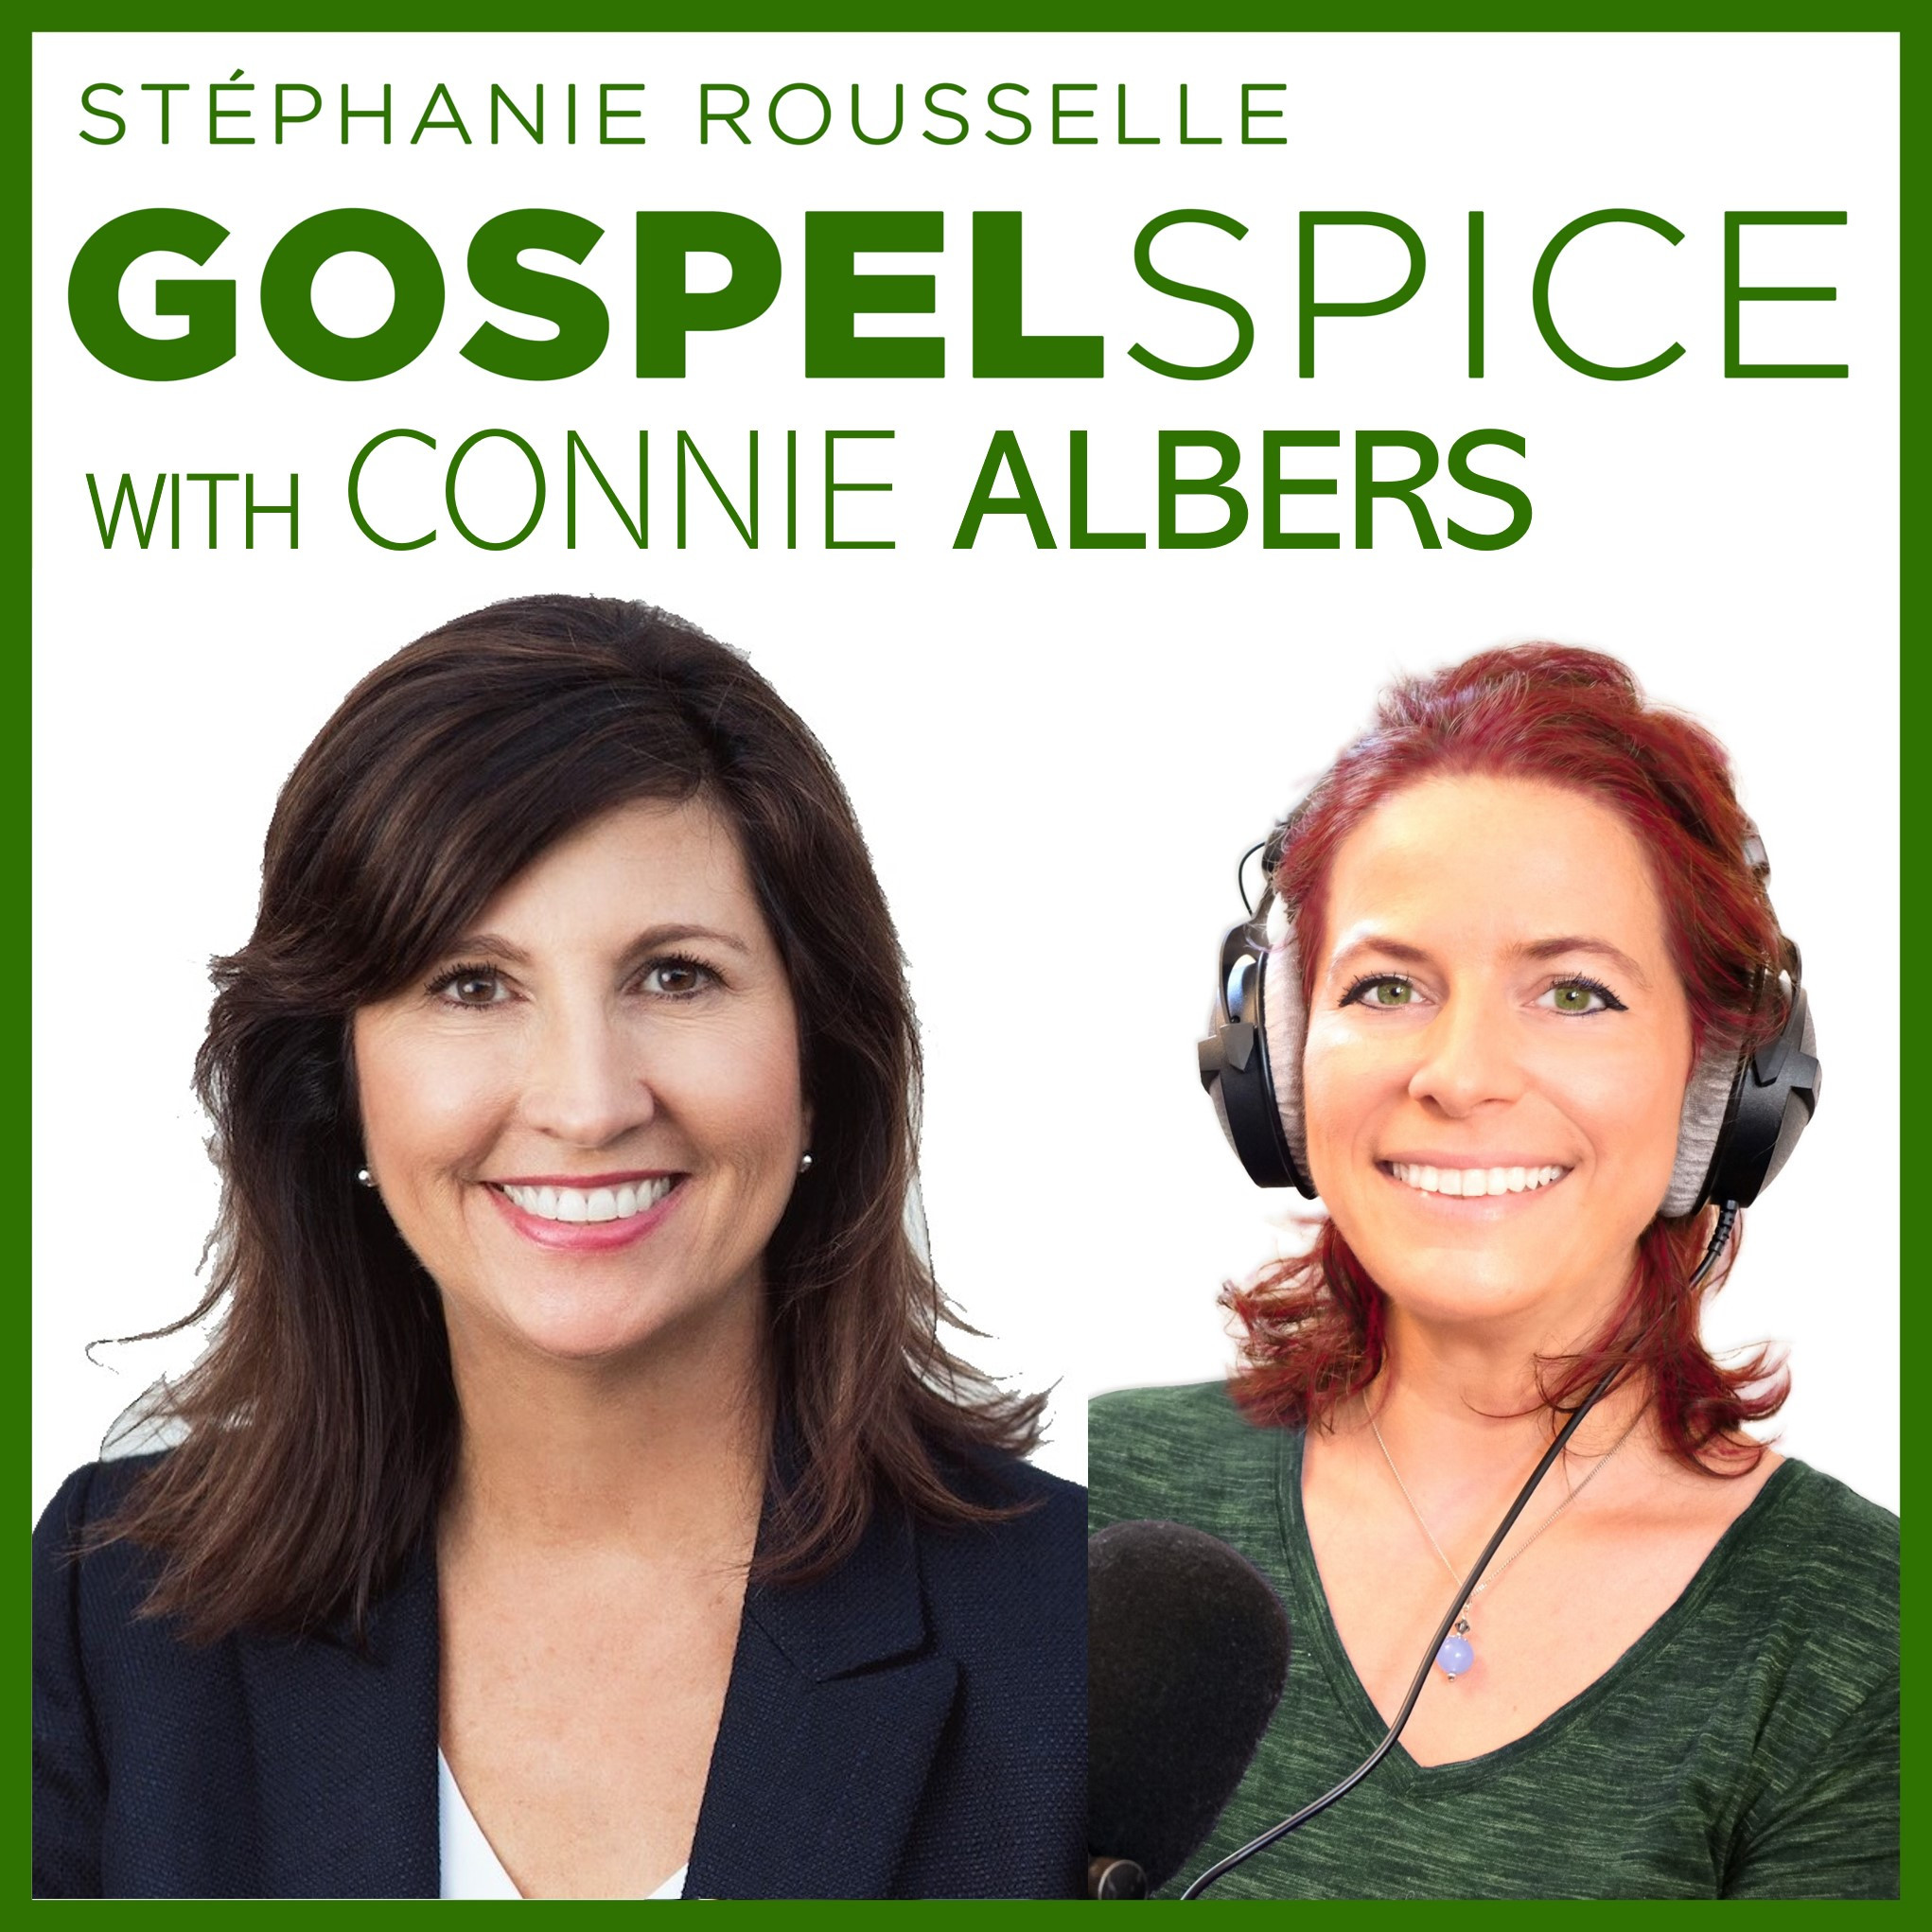 Grow from 2020 to embrace 2021, with Connie Albers